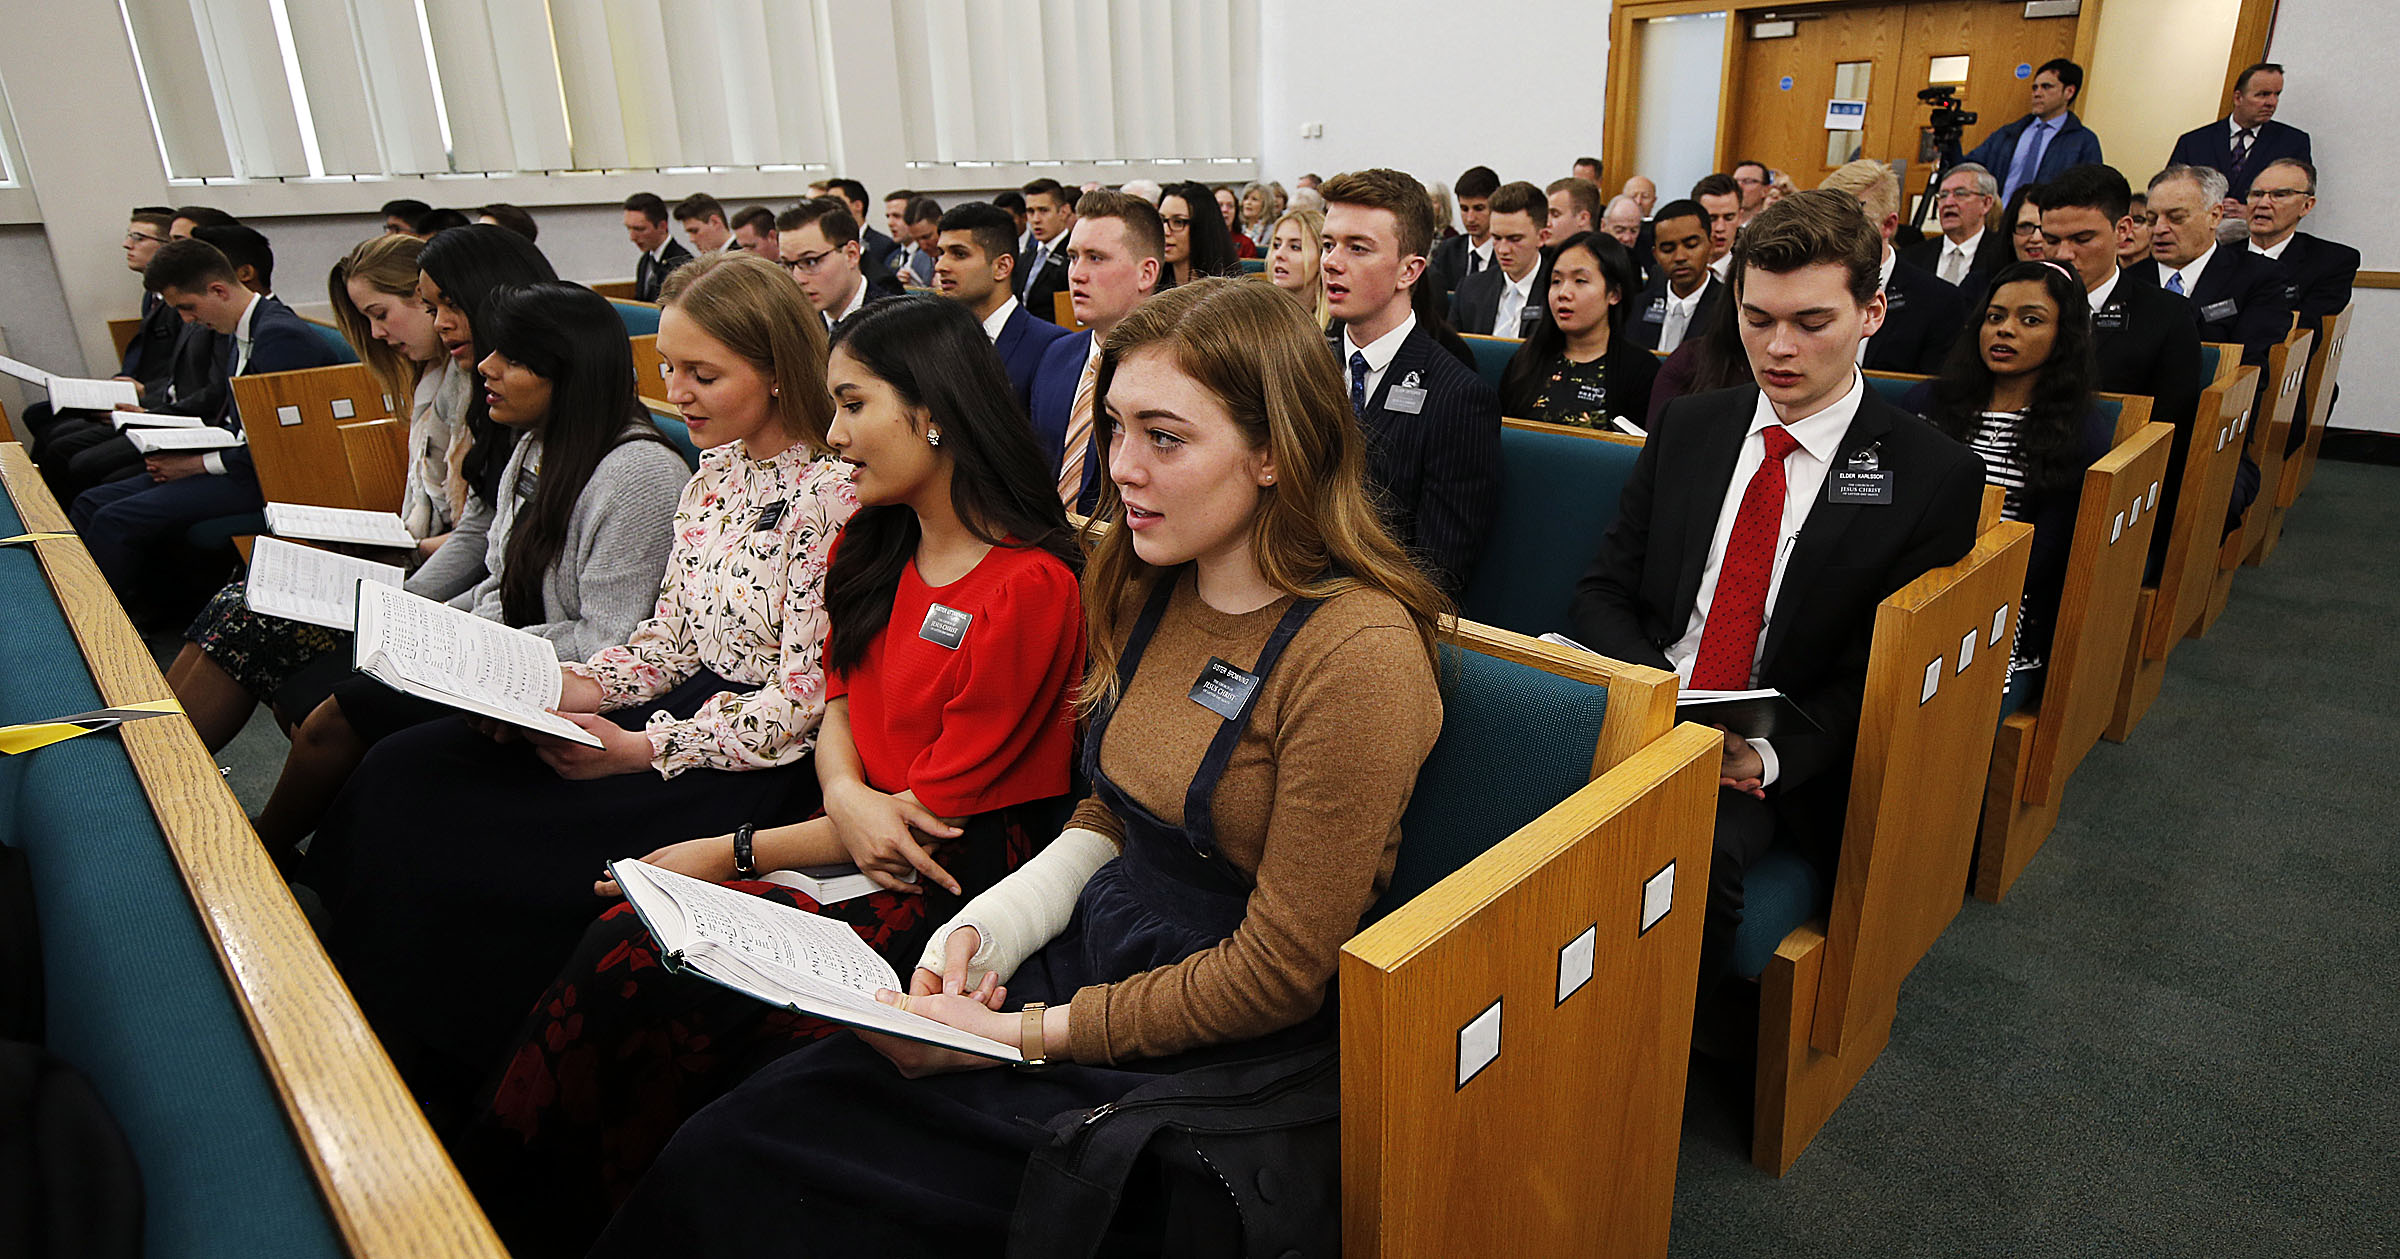 Missionaries sing during a meeting with President Russell M. Nelson and Elder Jeffrey R. Holland at the Hyde Park Chapel in London on Thursday, April 12, 2018.